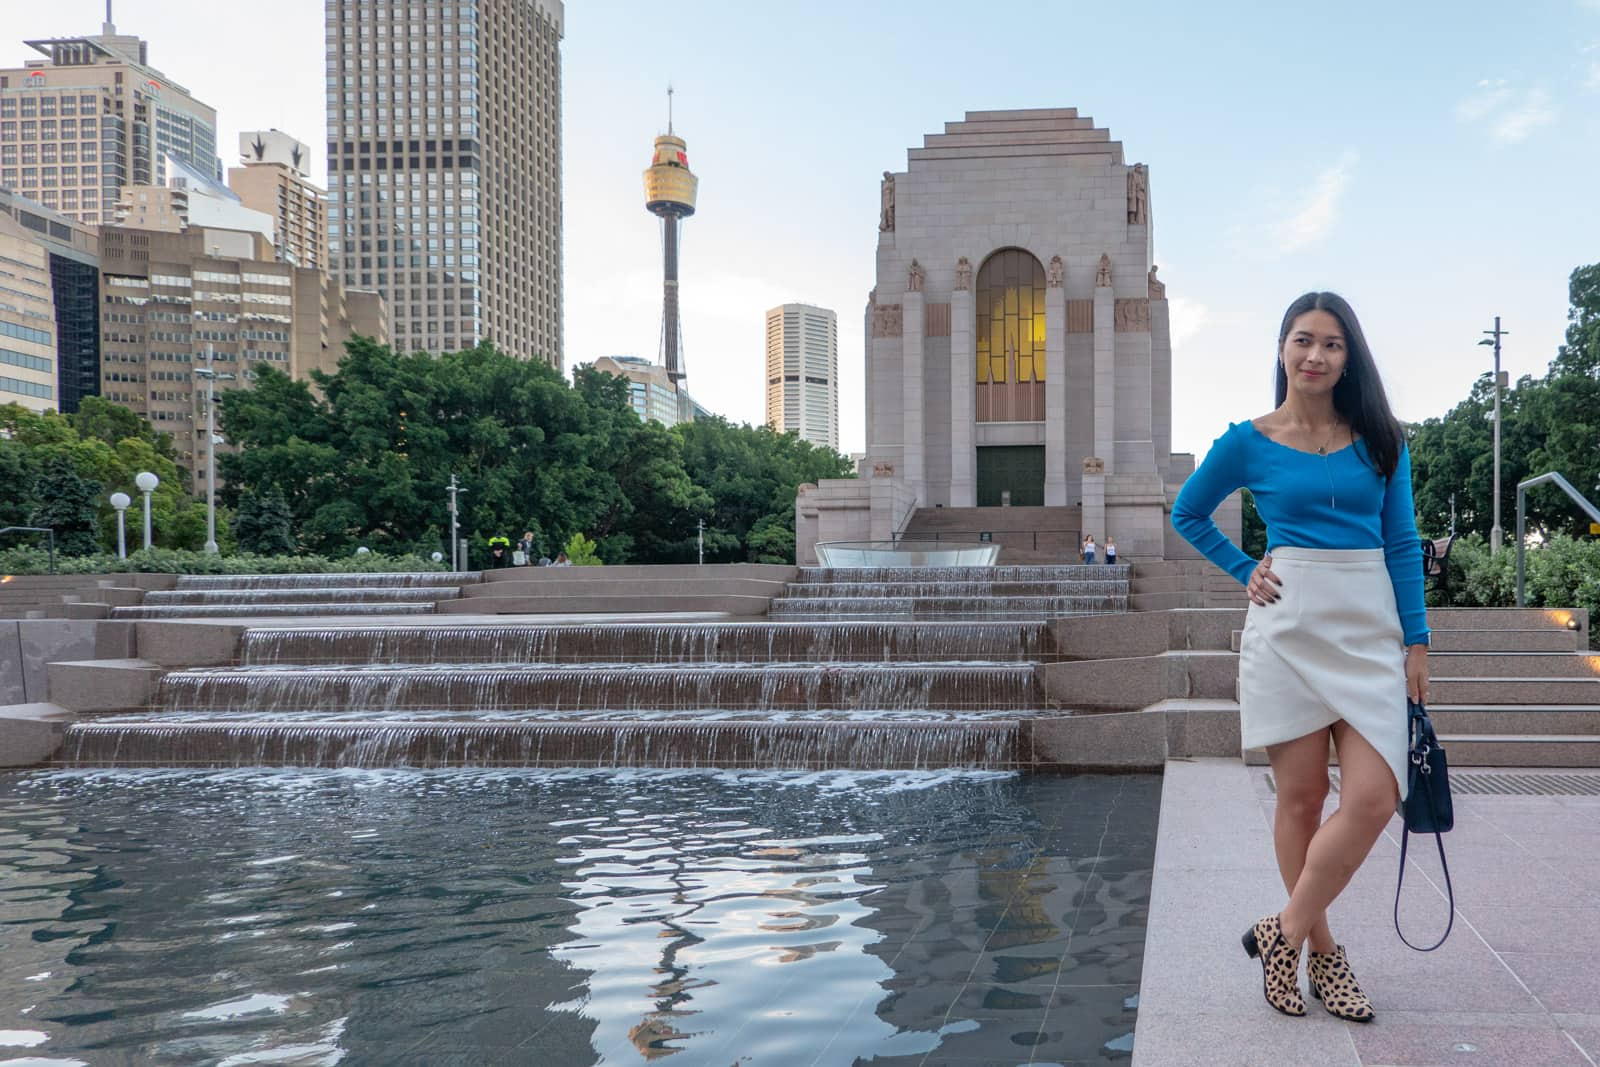 The same woman in other photos on this page, in the same outfit. She is standing by a reflecting pool with a water feature where the water flows down some steps. The city can be seen in the background.